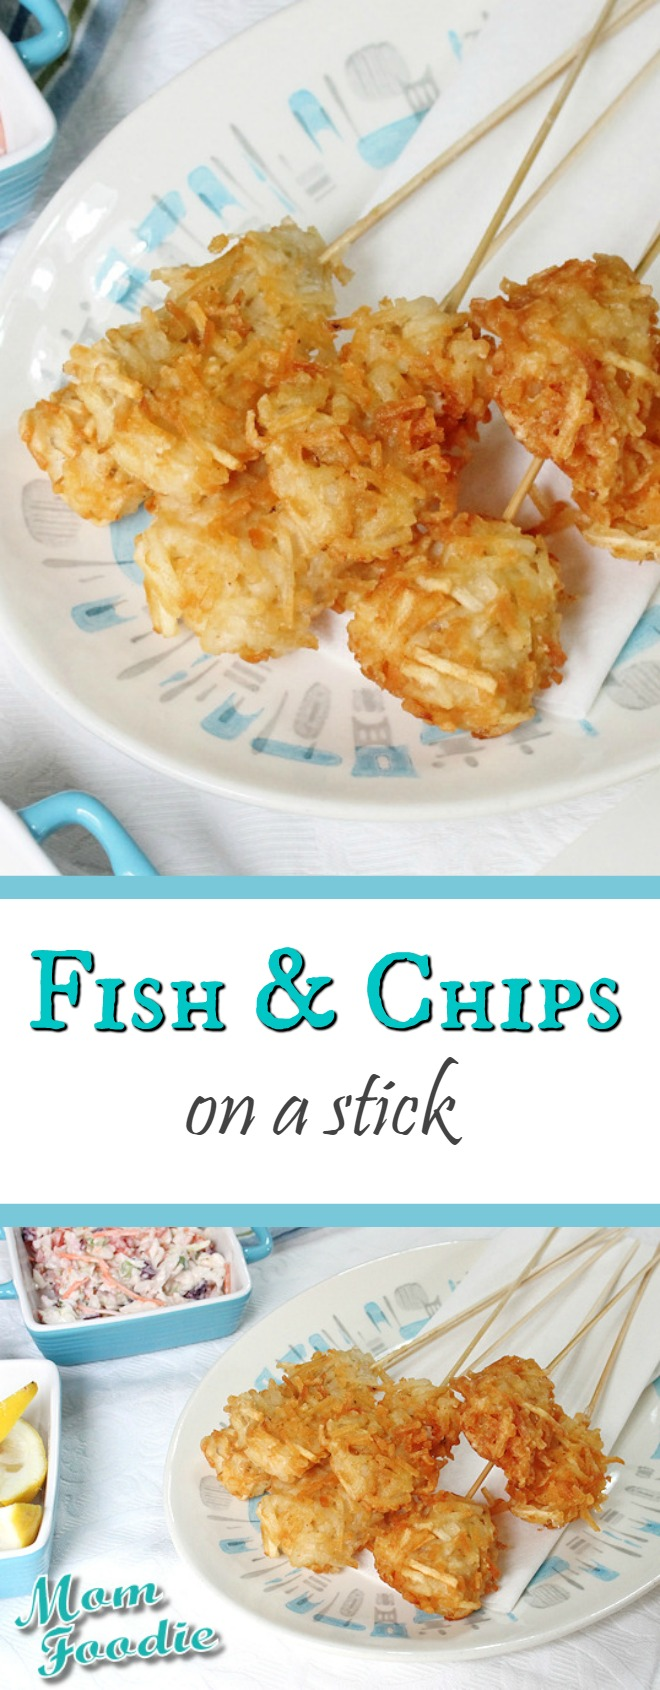 Fish & Chips on-a-stick